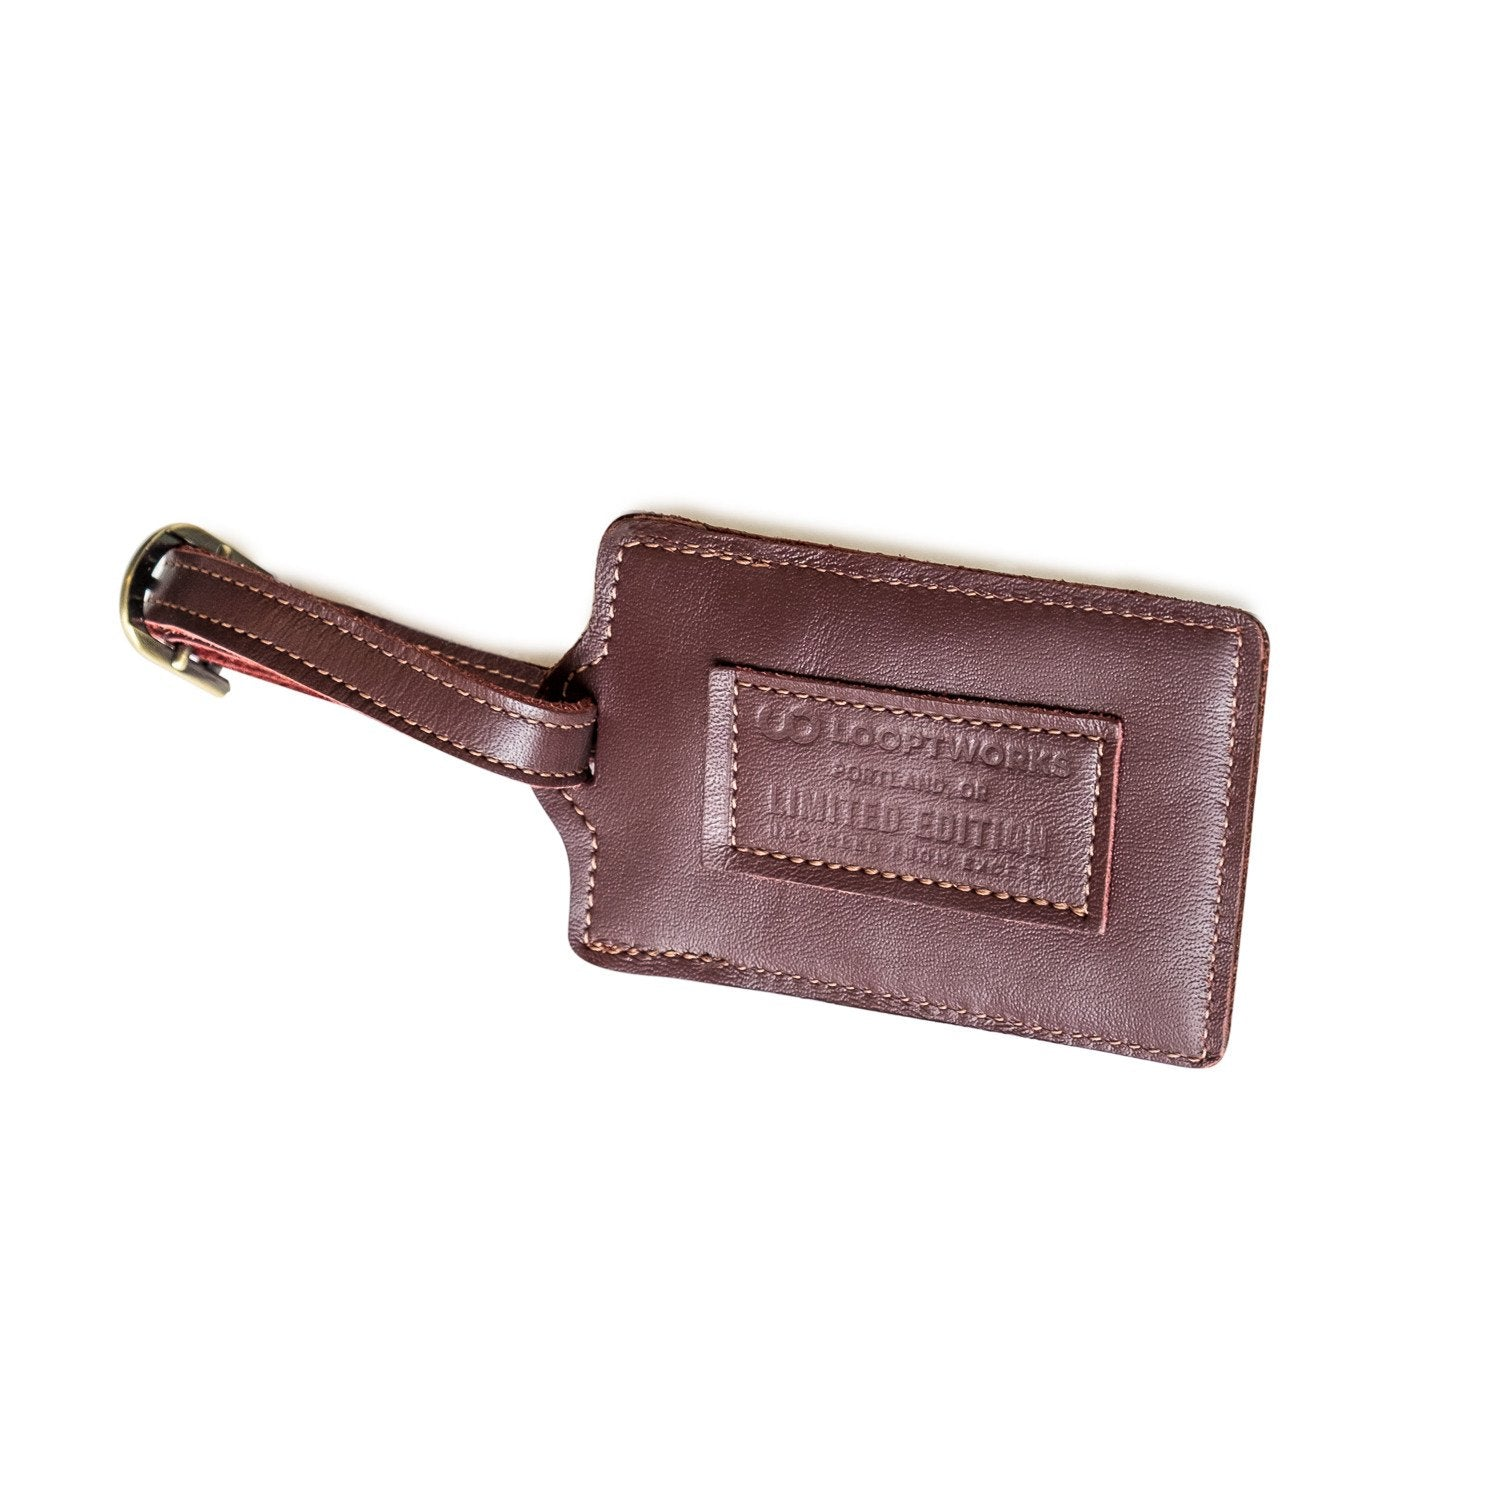 Horizon Air Luggage Tag Accessories - Looptworks